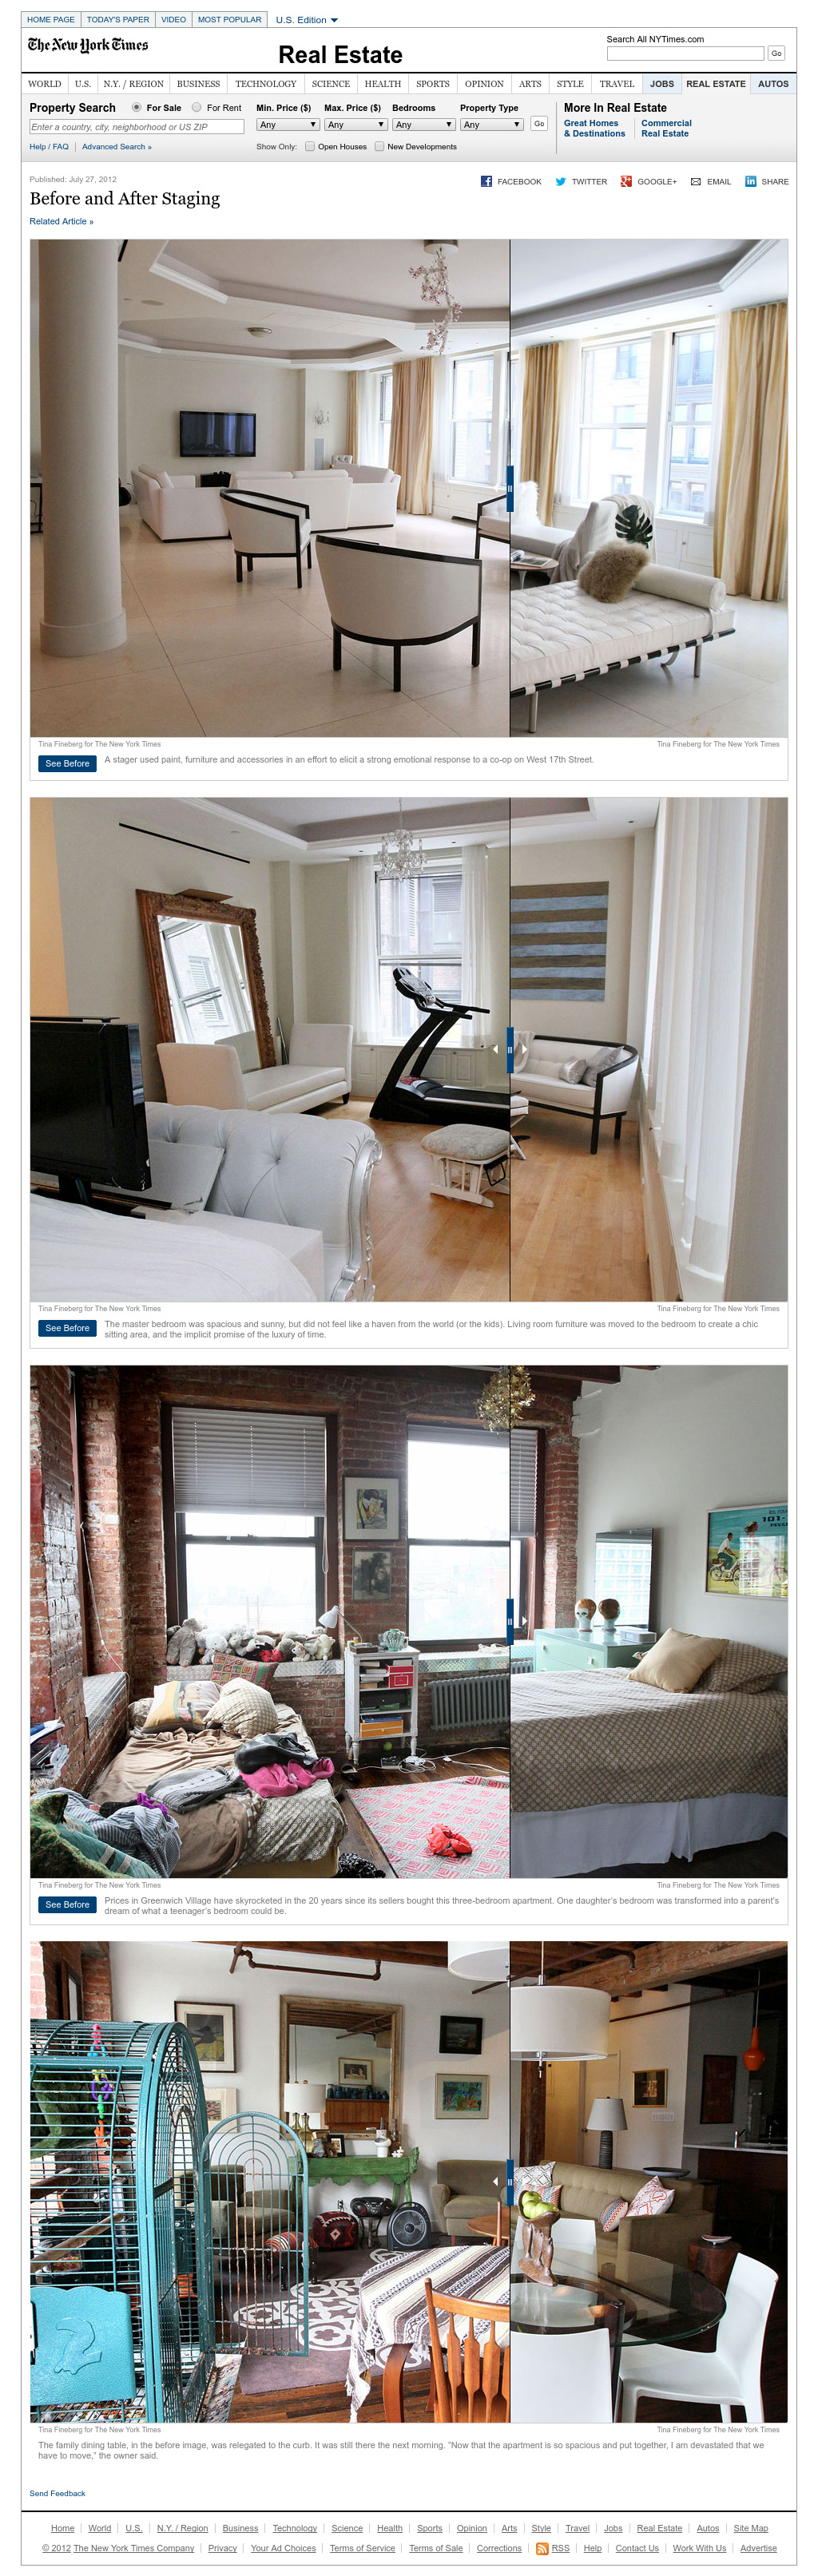 Before And After Staging Interactive Nytimes Com